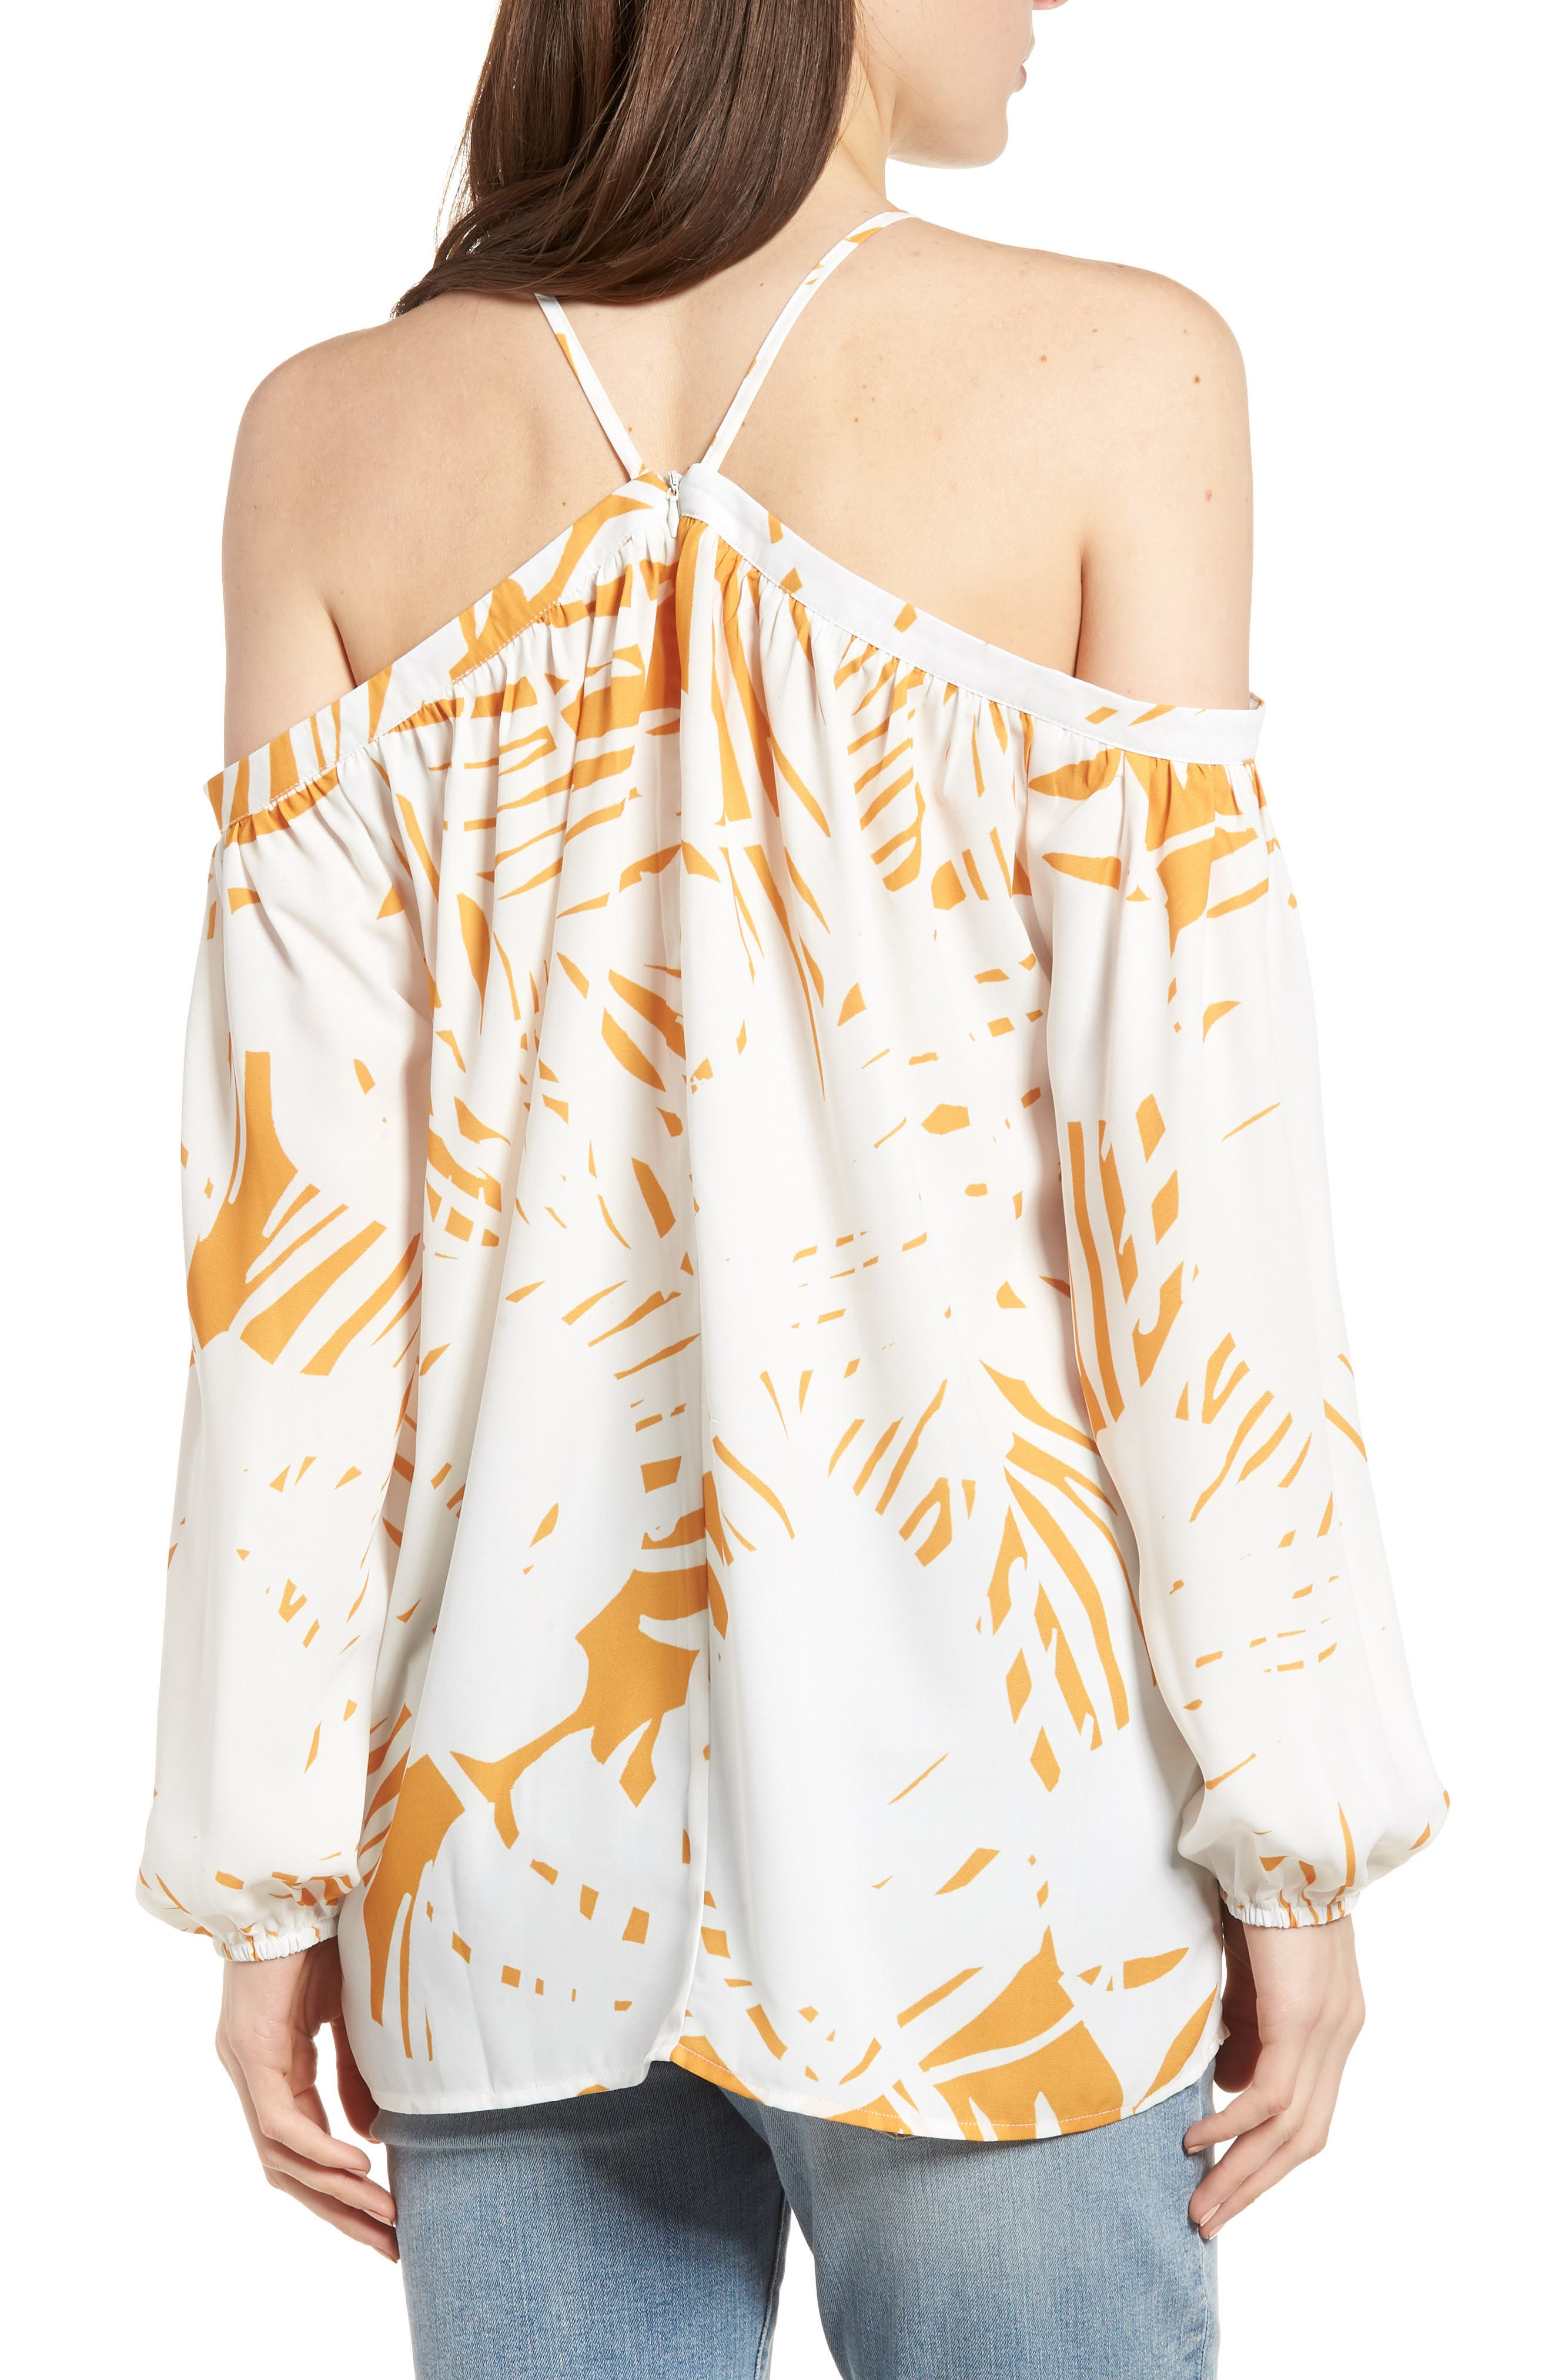 Bishop + Young Ana Palm Print Off the Shoulder Top,                             Alternate thumbnail 2, color,                             Riviera Print